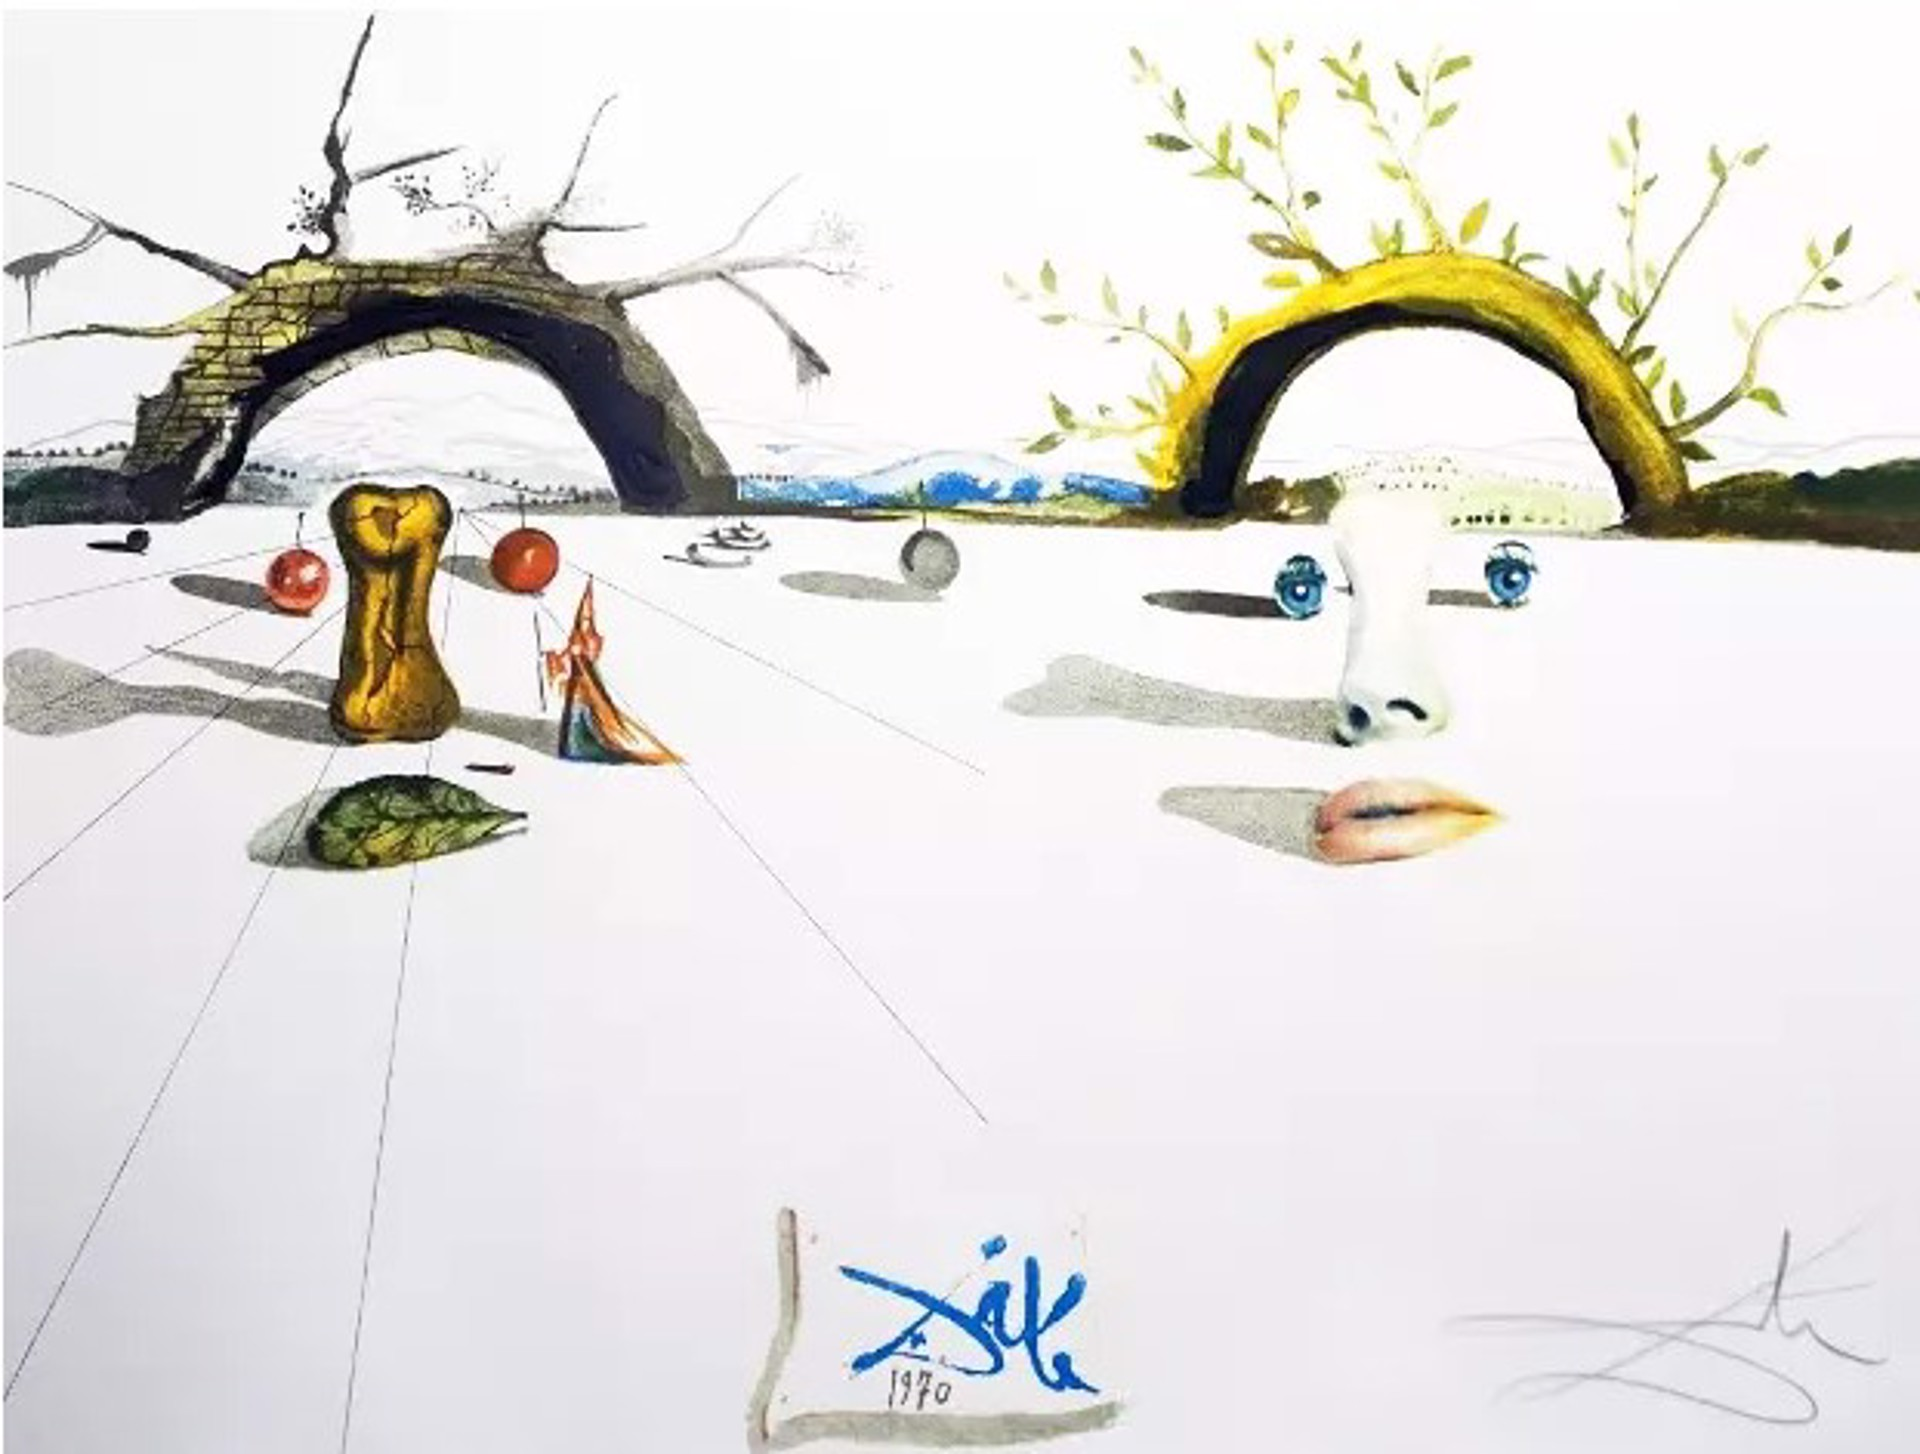 Salvador Dali, Winter and Summer, 1973 edition 109 of 300